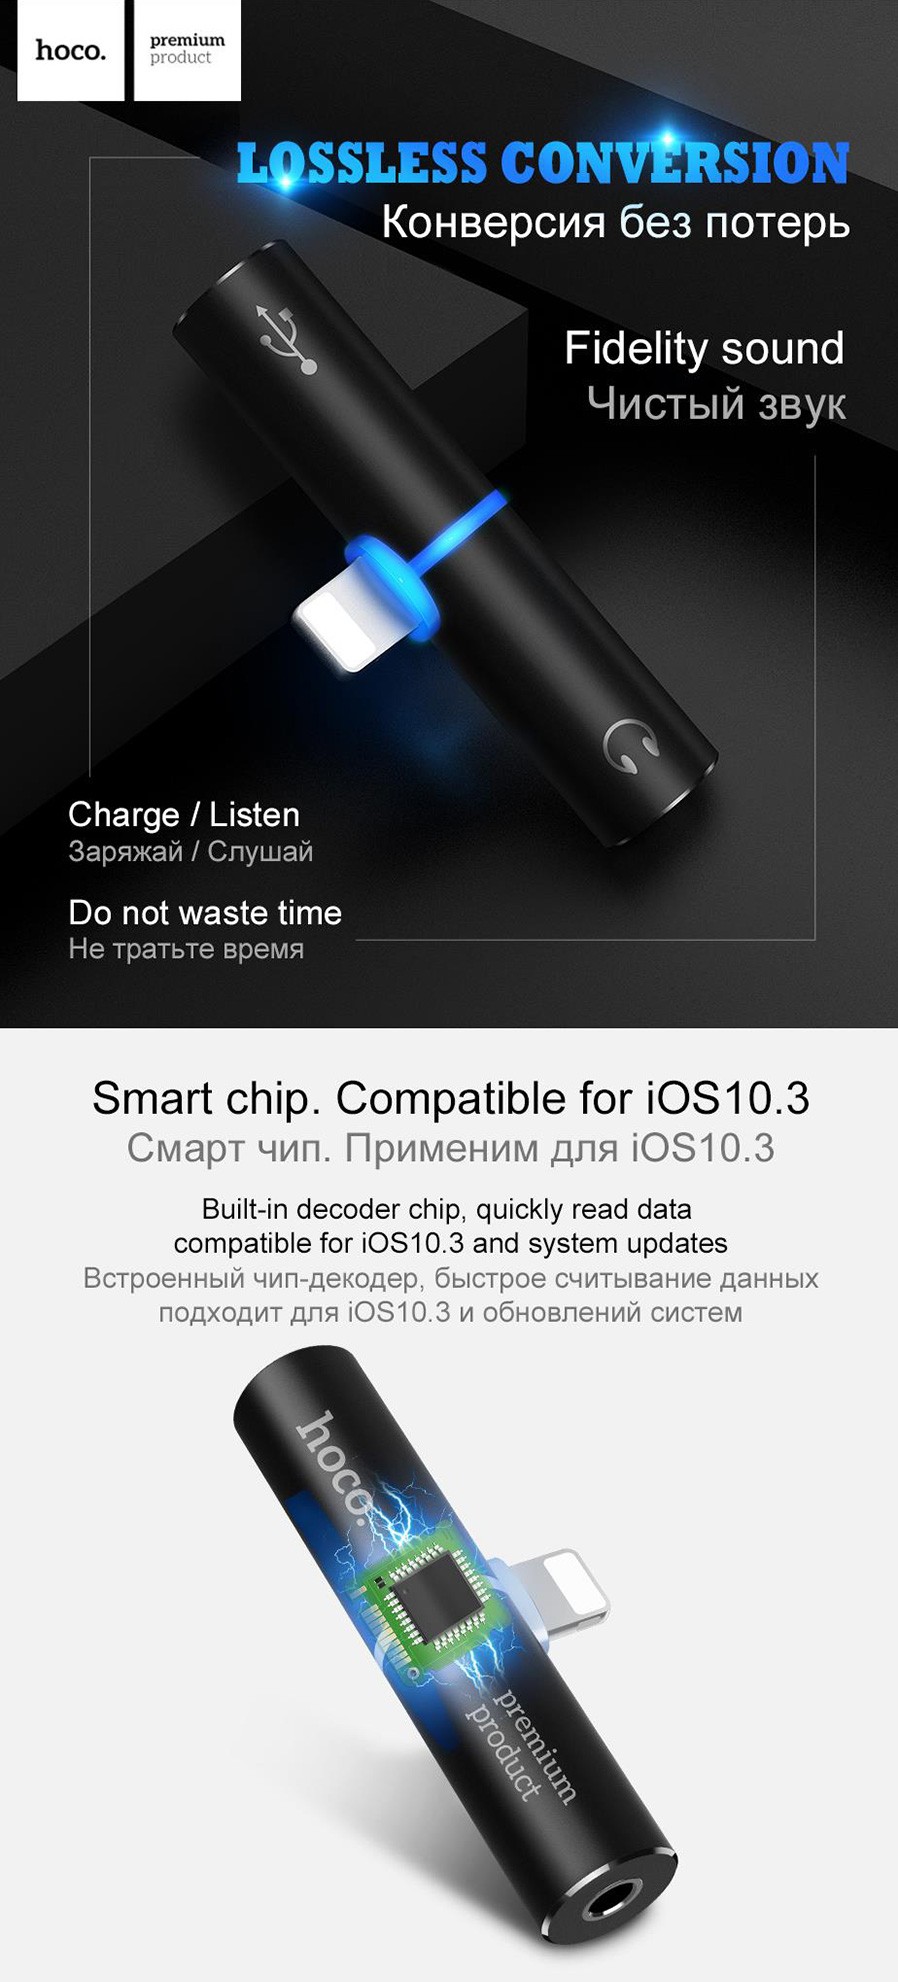 Hoco Lightning To 35mm Jack 2 In 1 Audio Adapter Black Free Dc5v Dc30v Converter By 74hc14 Line Control On Earphones When Listening Music Not Supporting Increasing Or Reducing Volume 5 Charging Maximum Current 2a